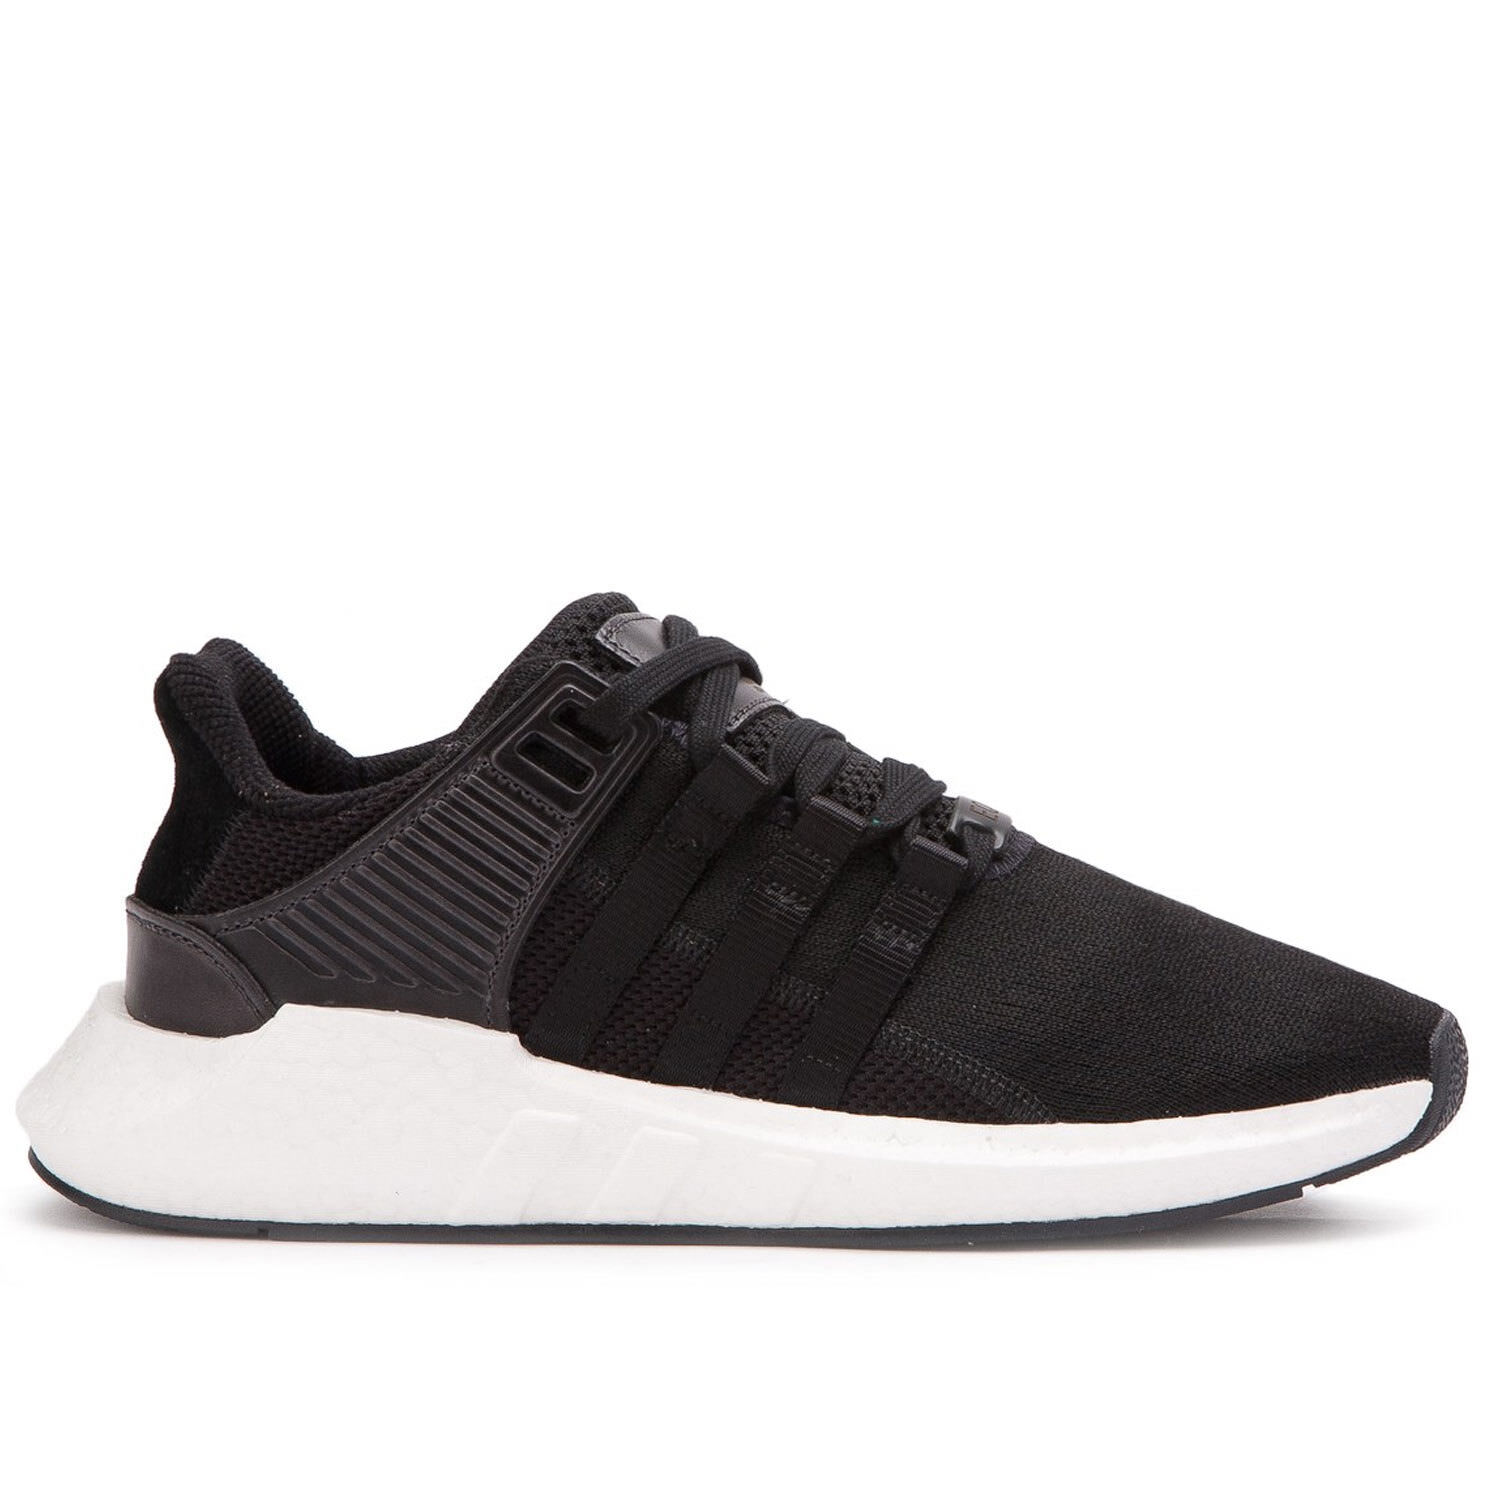 adidas EQT Support 93 17 Boost Black Milled Leather Sz 10 Bb1236 W ... 104b11cad6